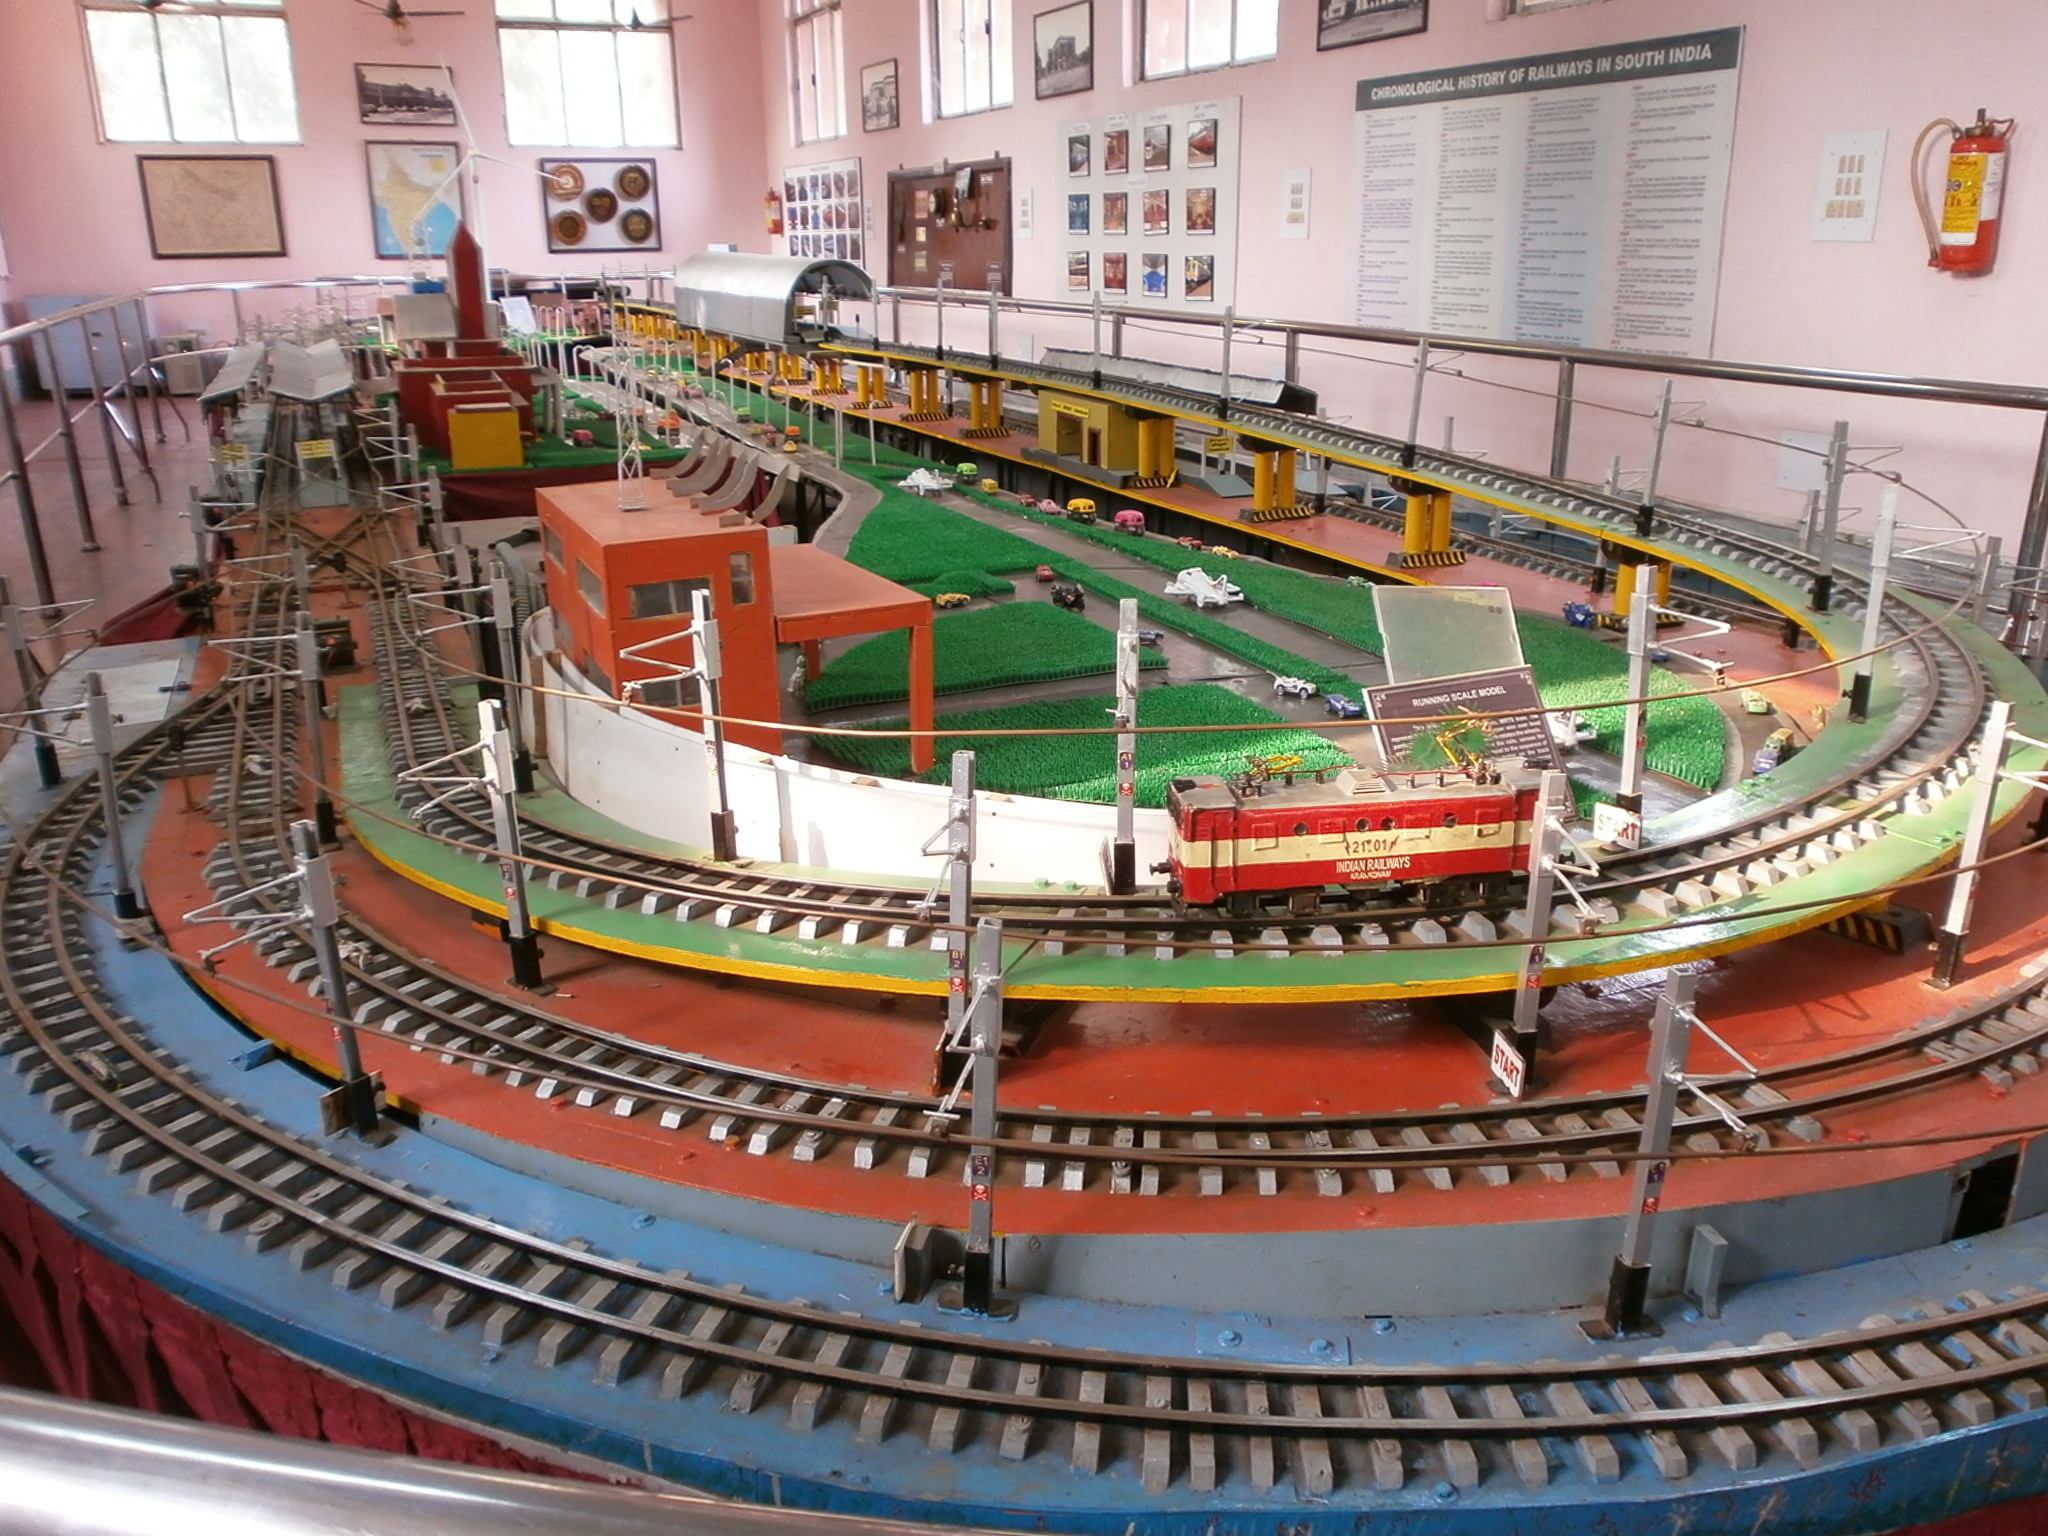 The Best Museums to Visit in Chennai